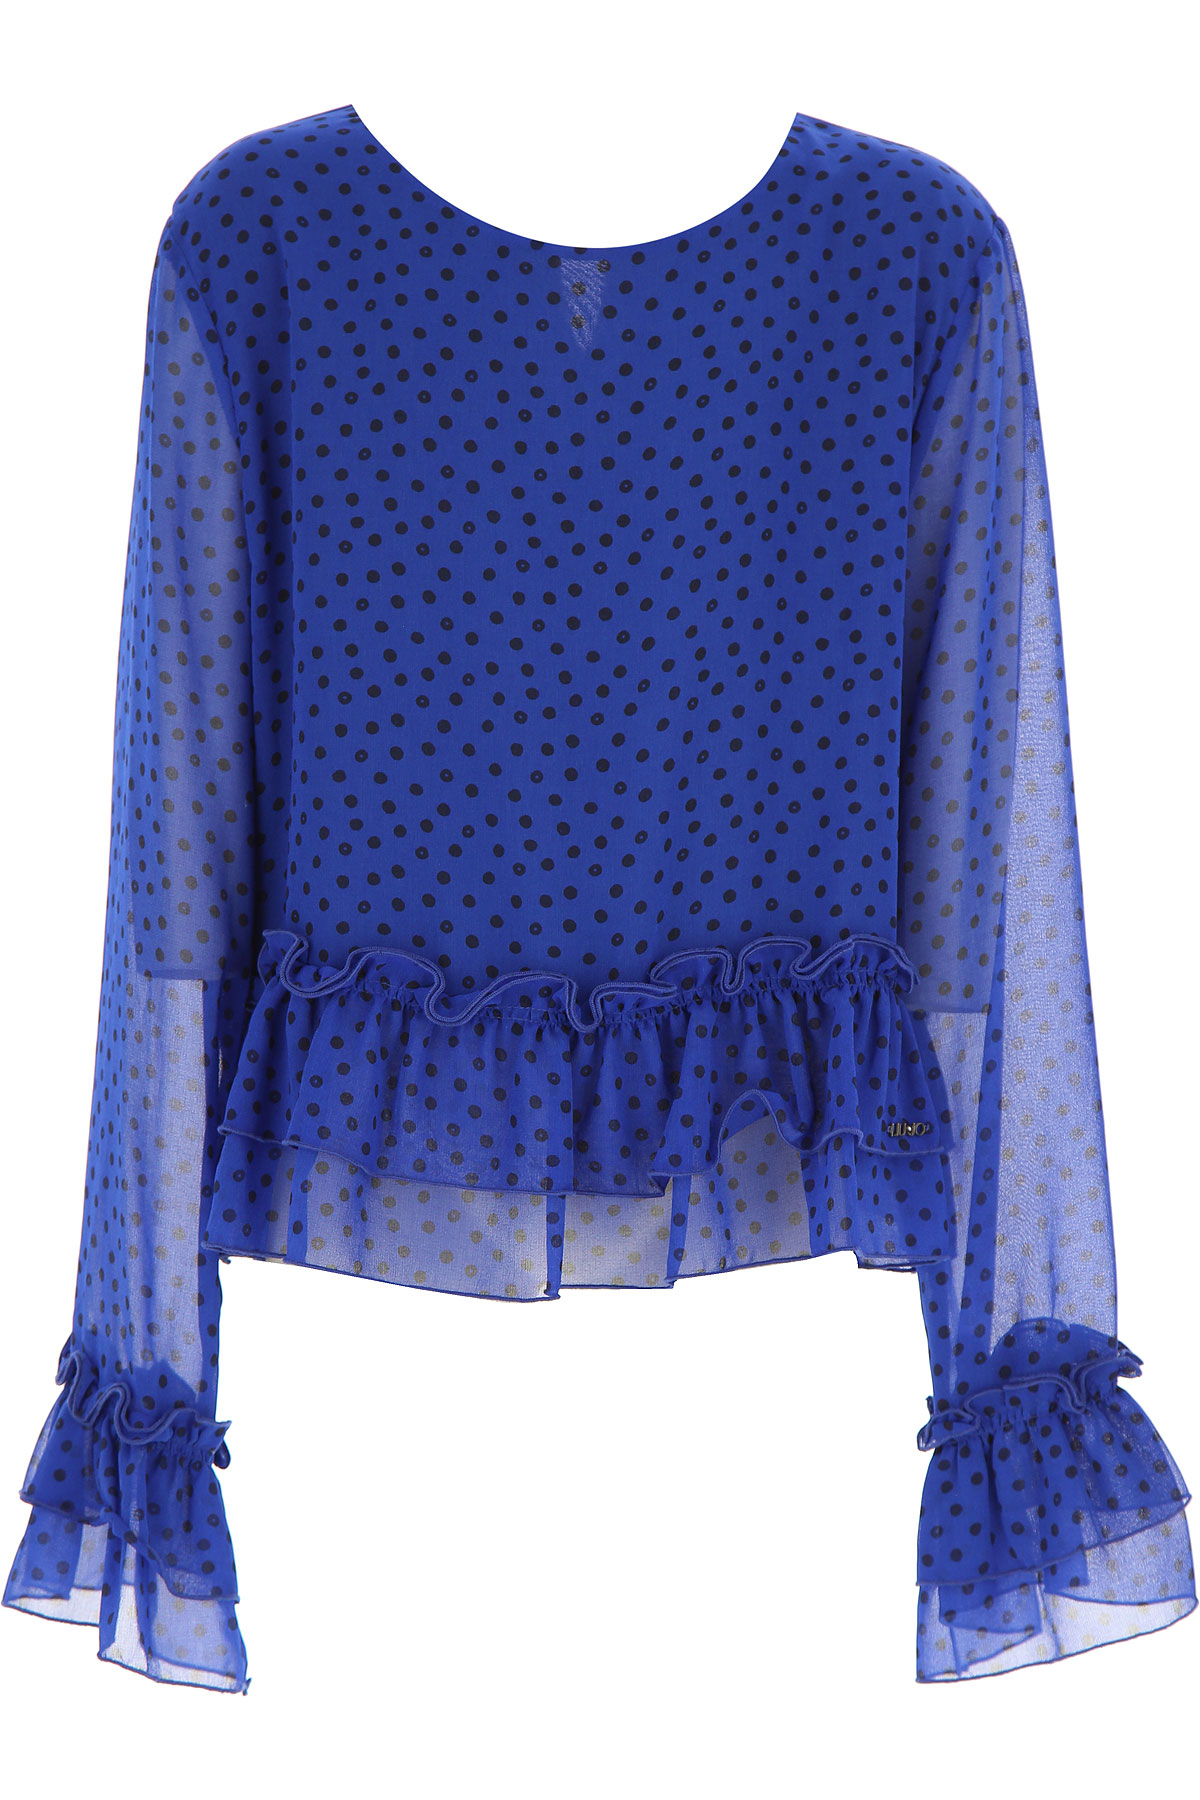 Liu Jo Kids Shirts for Girls, Elettric Blue, polyester, 2017, 14Y 16Y